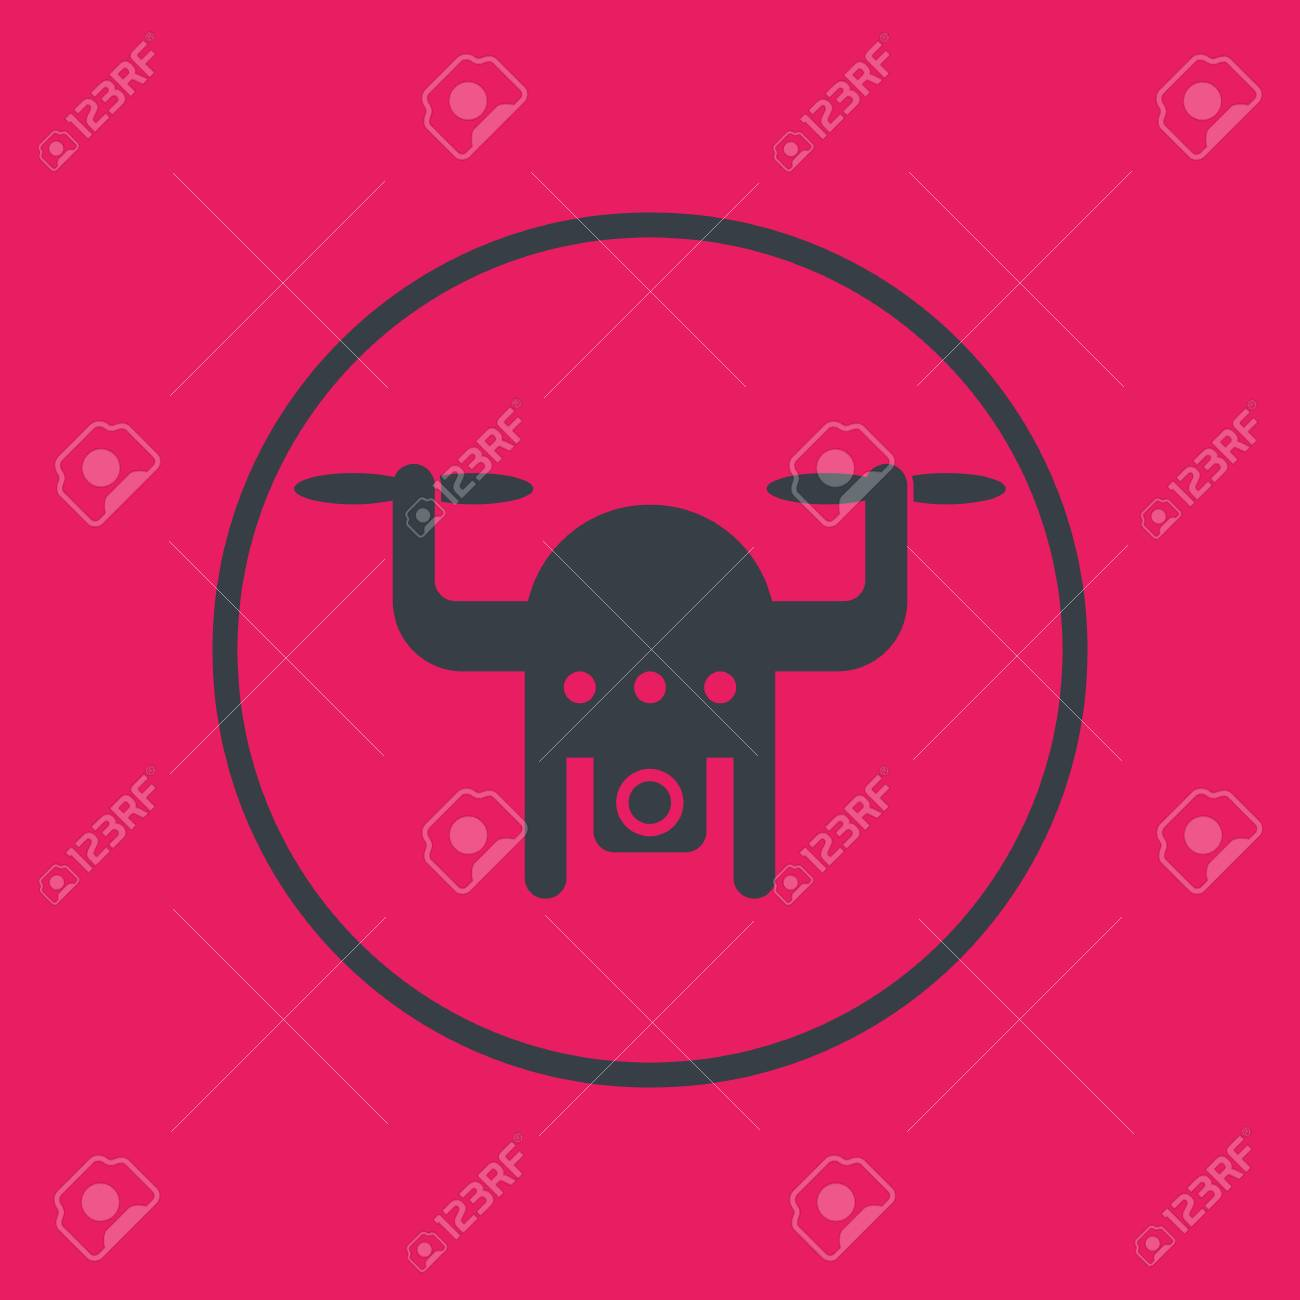 drone icon in circle